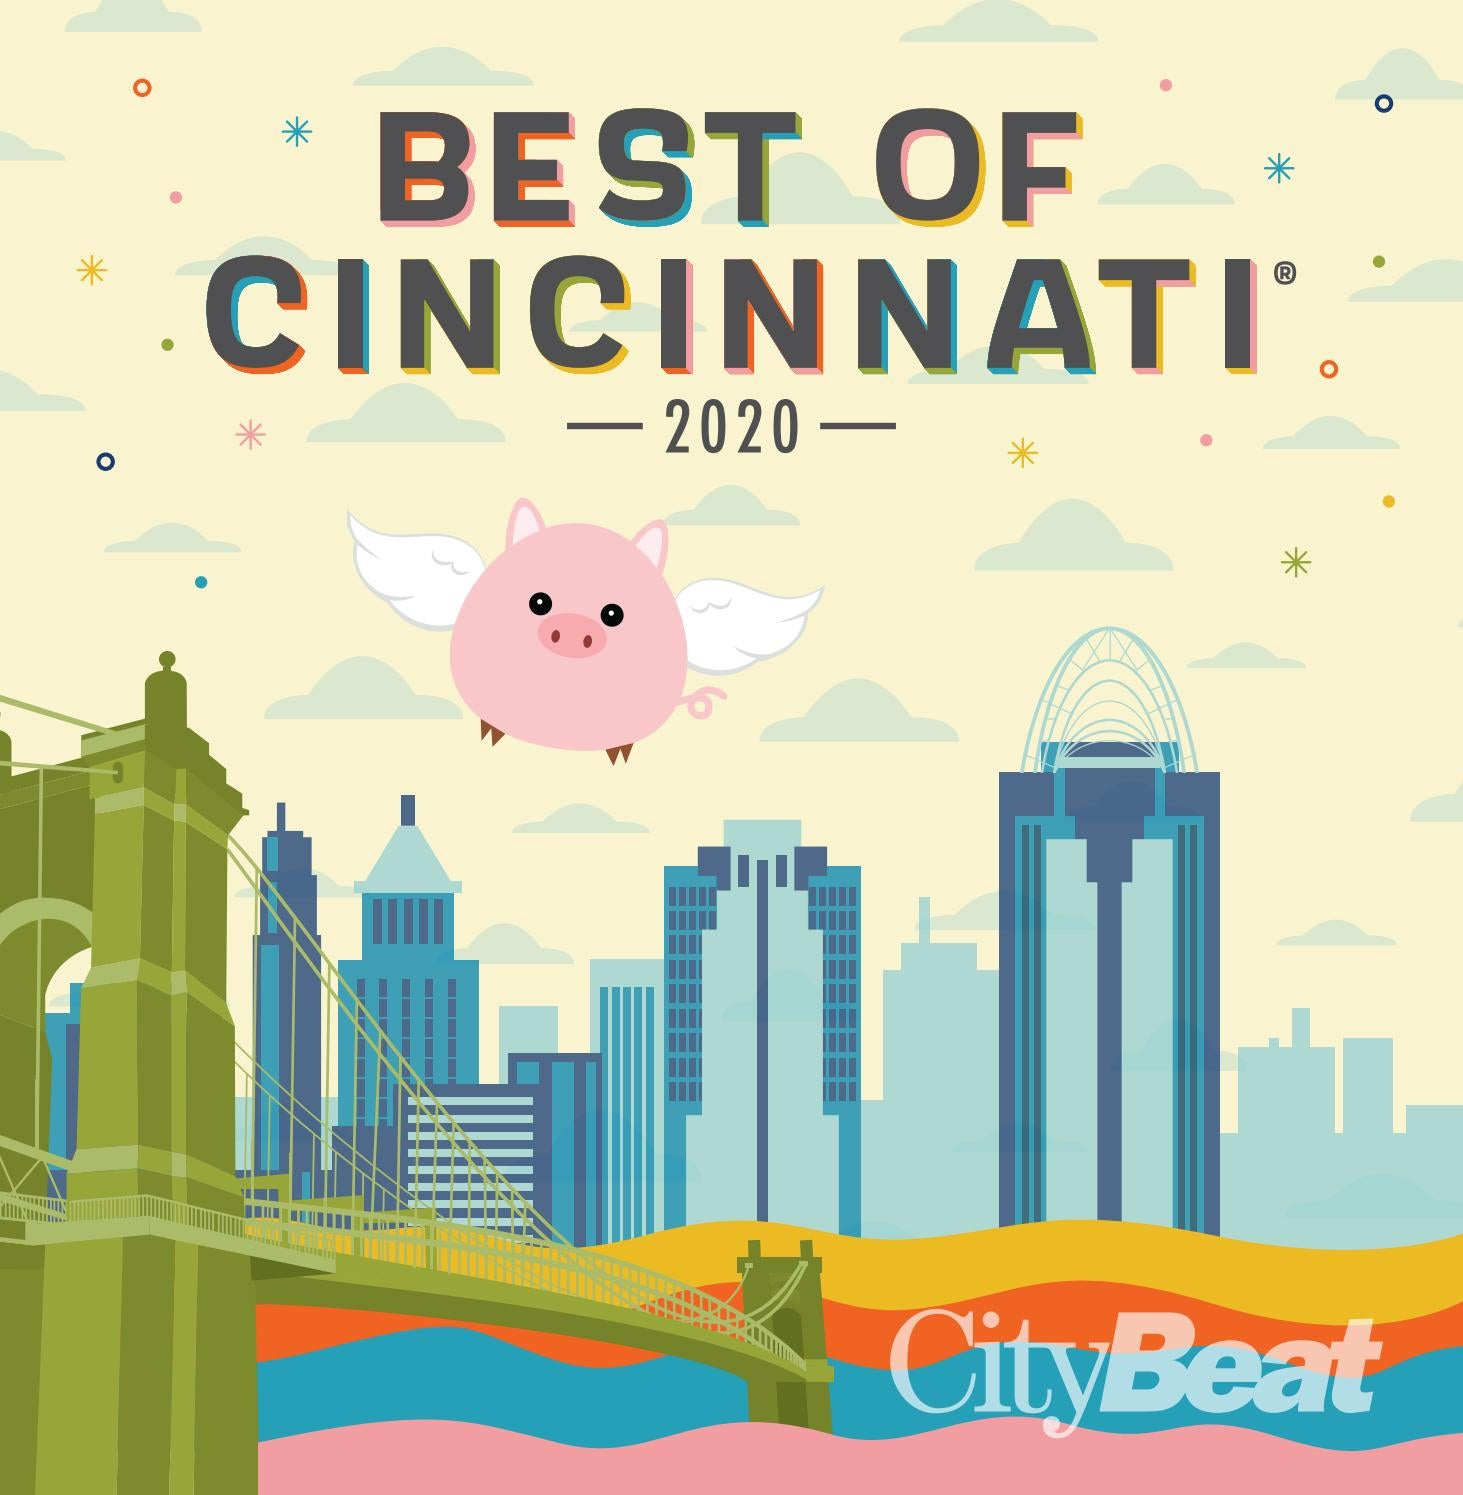 Christmas Comet 2020 Cincinnati Best Of Cincinnati© 2020 | CityBeat by Euclid Media Group   issuu